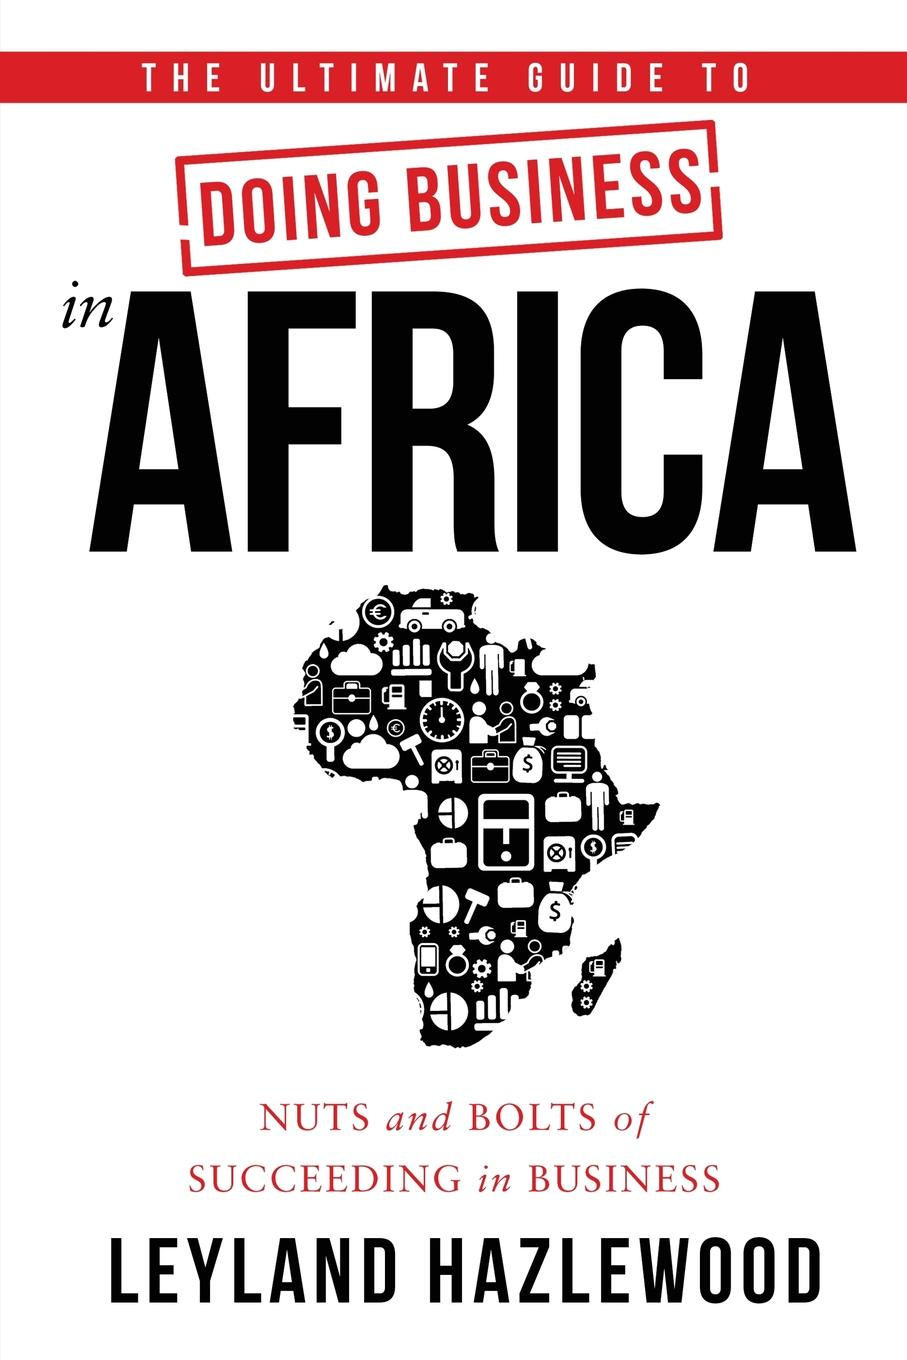 Leyland Hazlewood The Ultimate Guide to Doing Business in Africa. Nuts and Bolts of Succeeding in Business coleman cindy the designer s guide to doing research applying knowledge to inform design